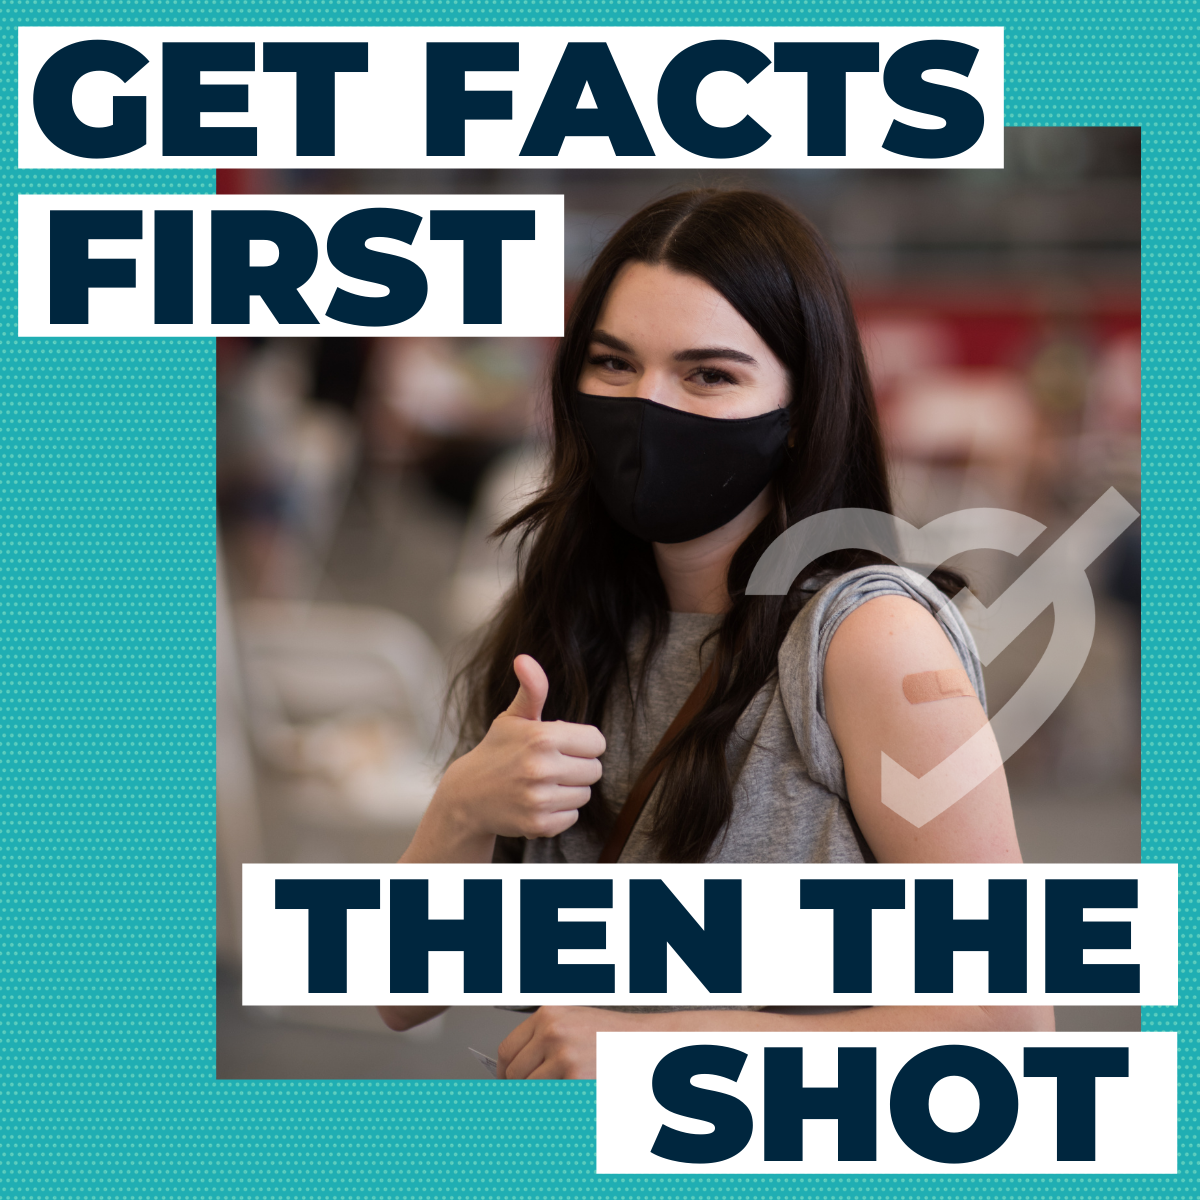 Vaccine facts first, then the shot